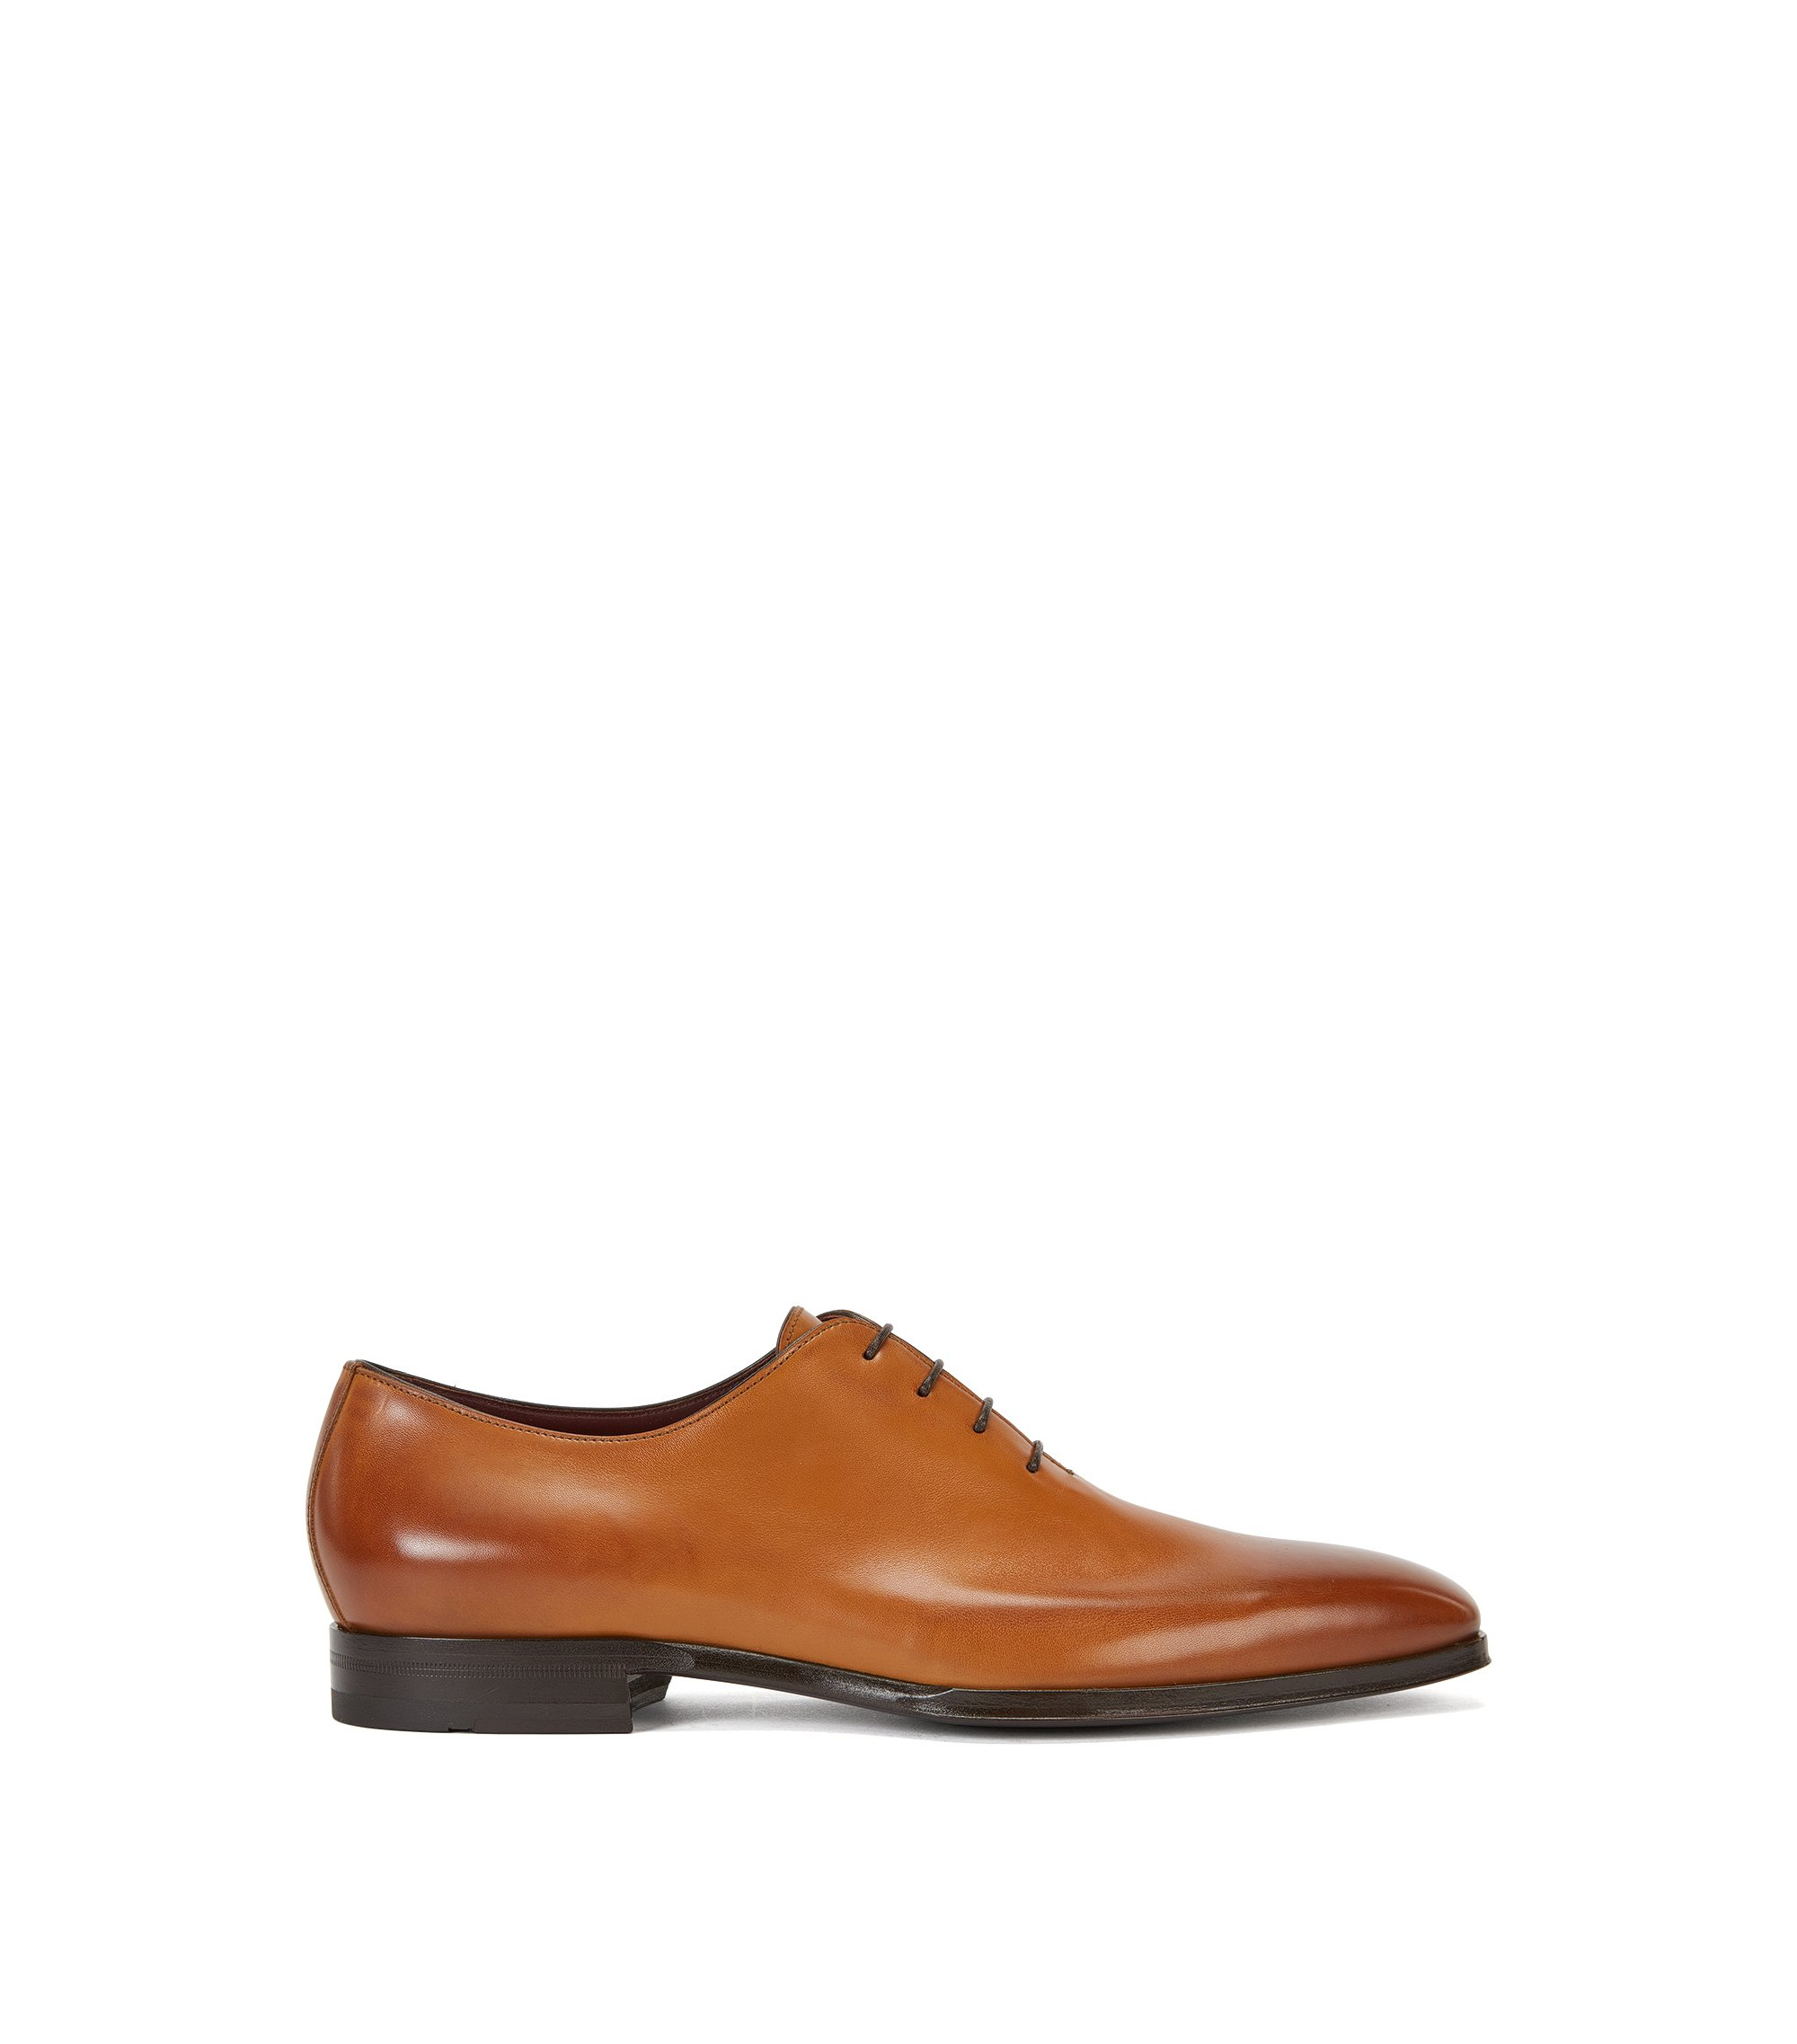 Italian Calfskin Oxford Dress Shoe | T-Club Oxfr ltpt, Brown